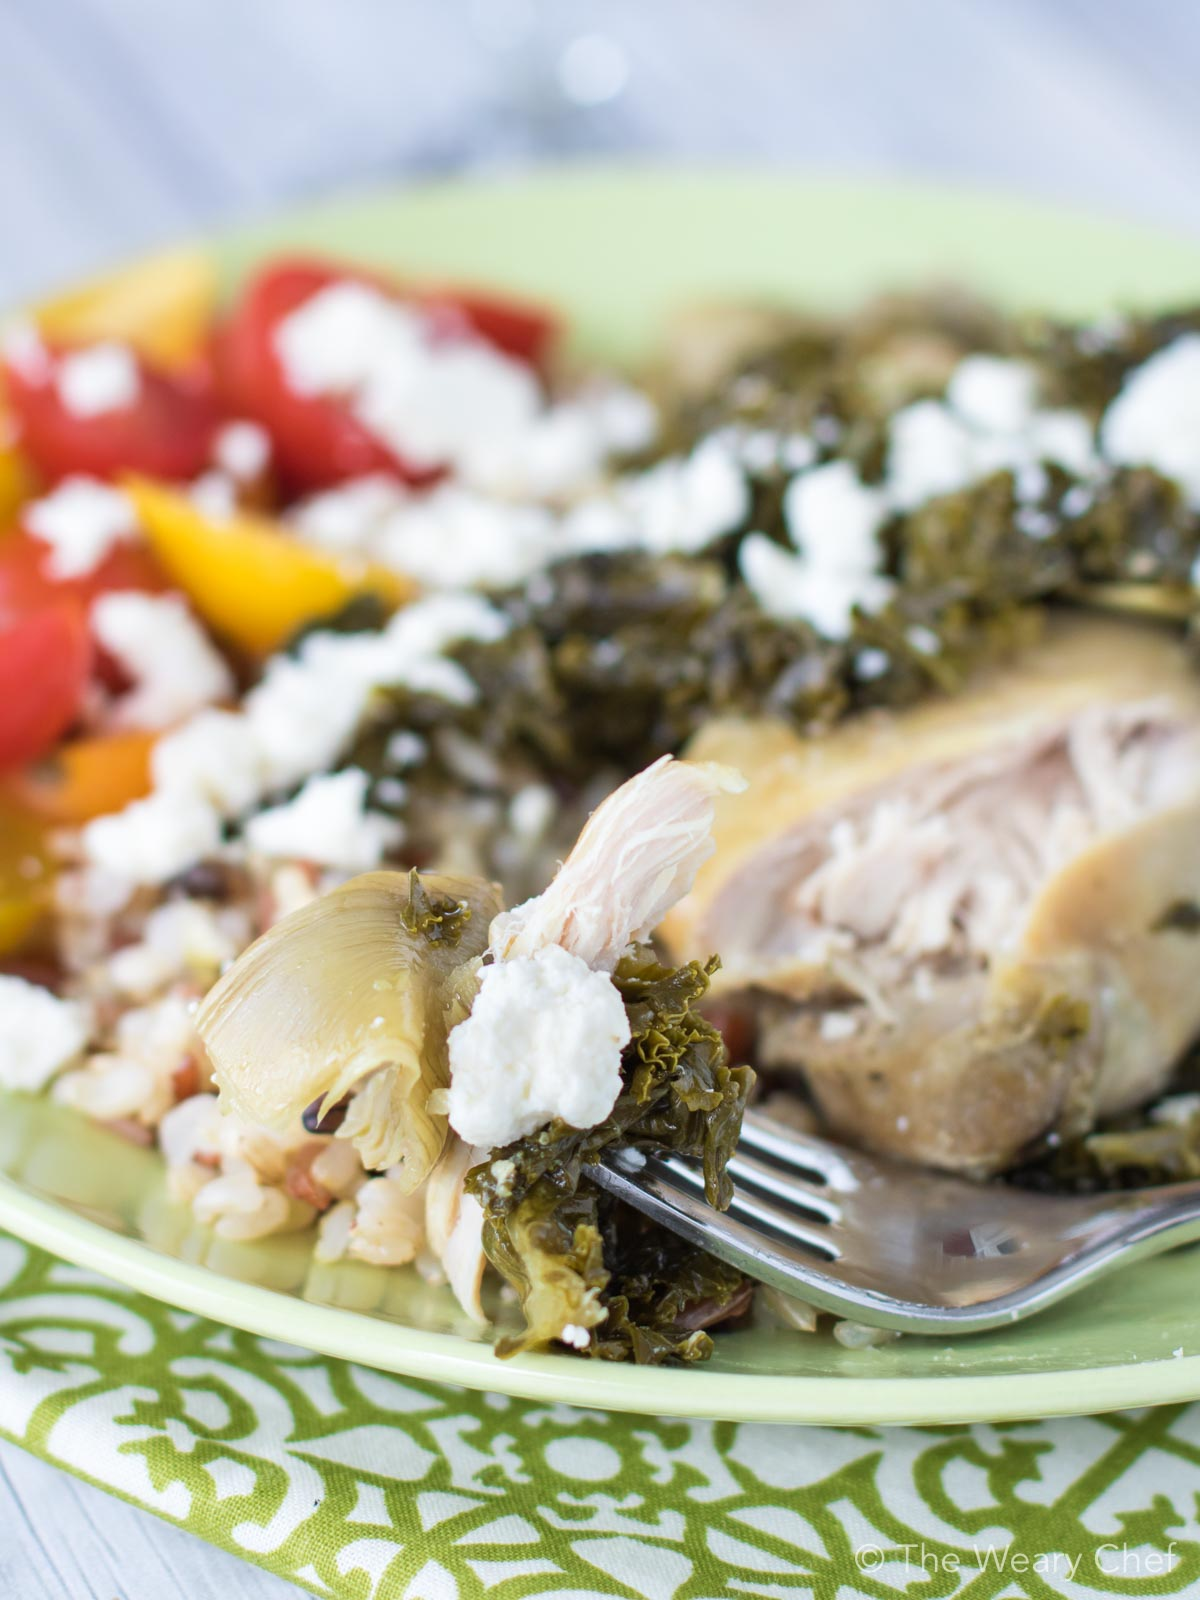 Enjoy these slow cooker chicken thighs simmered with seasoned artichokes, vermouth, and fresh kale.